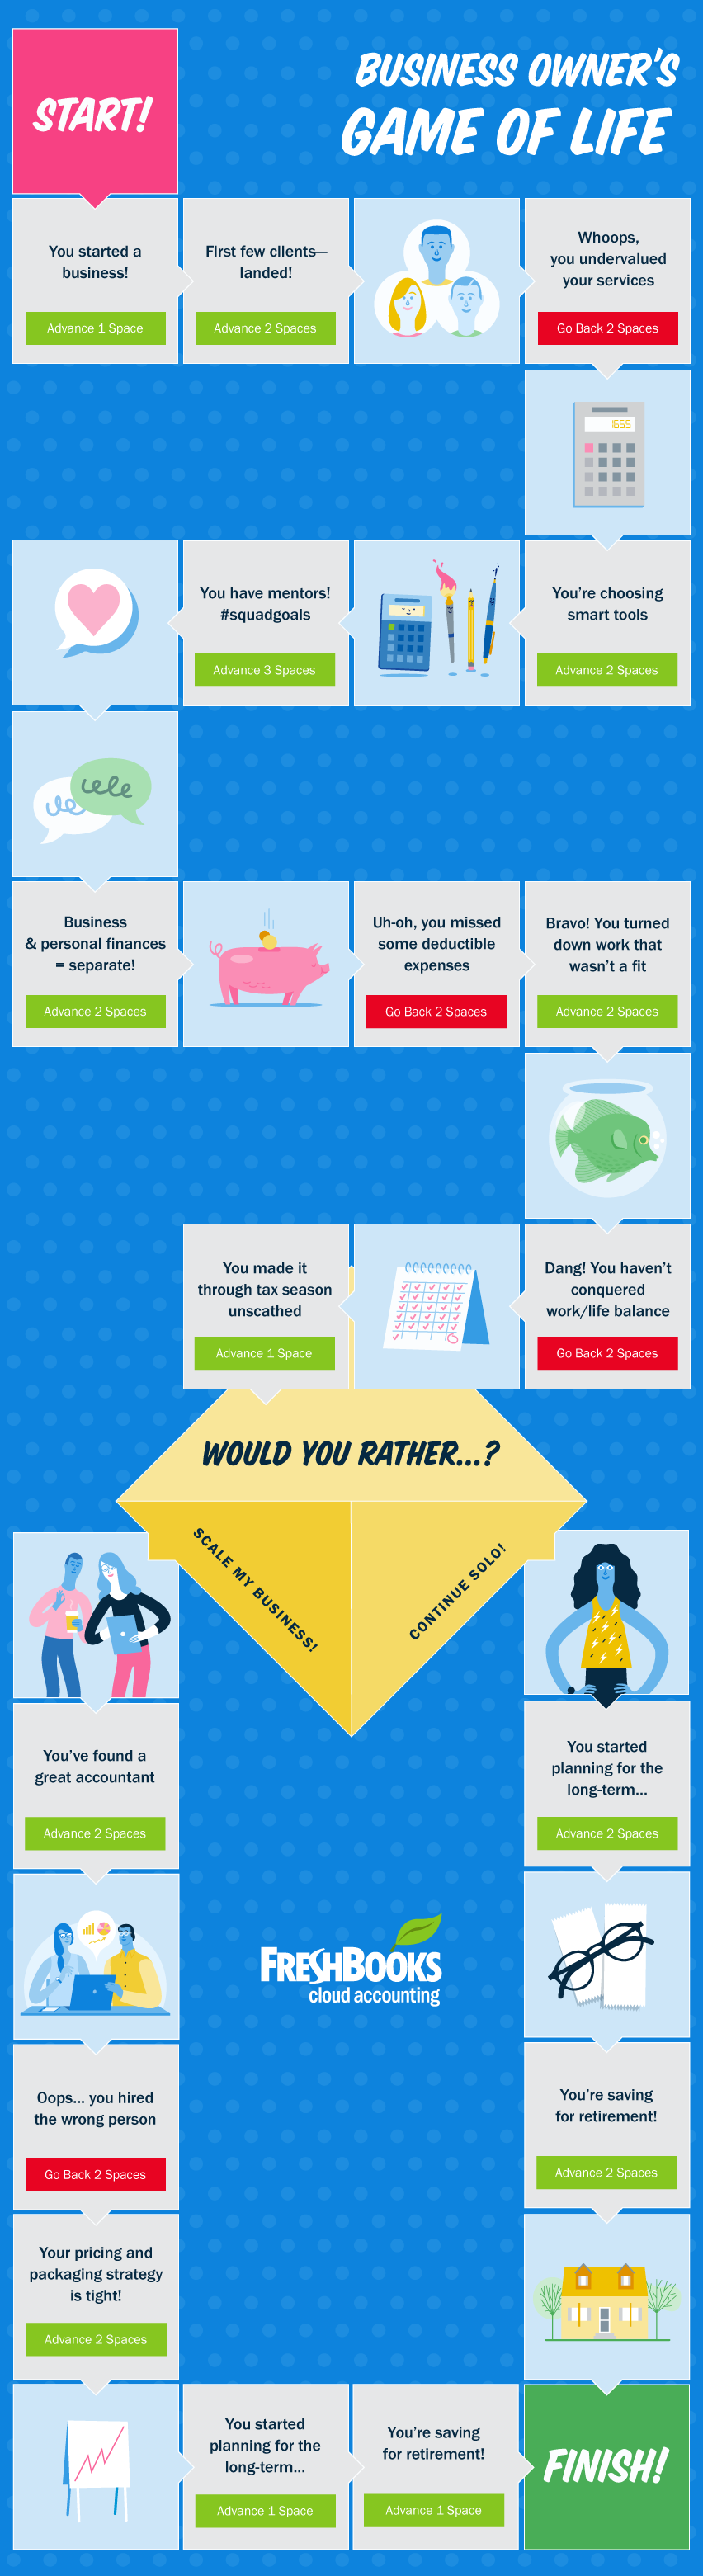 Business Owner's Game of Life #infographic